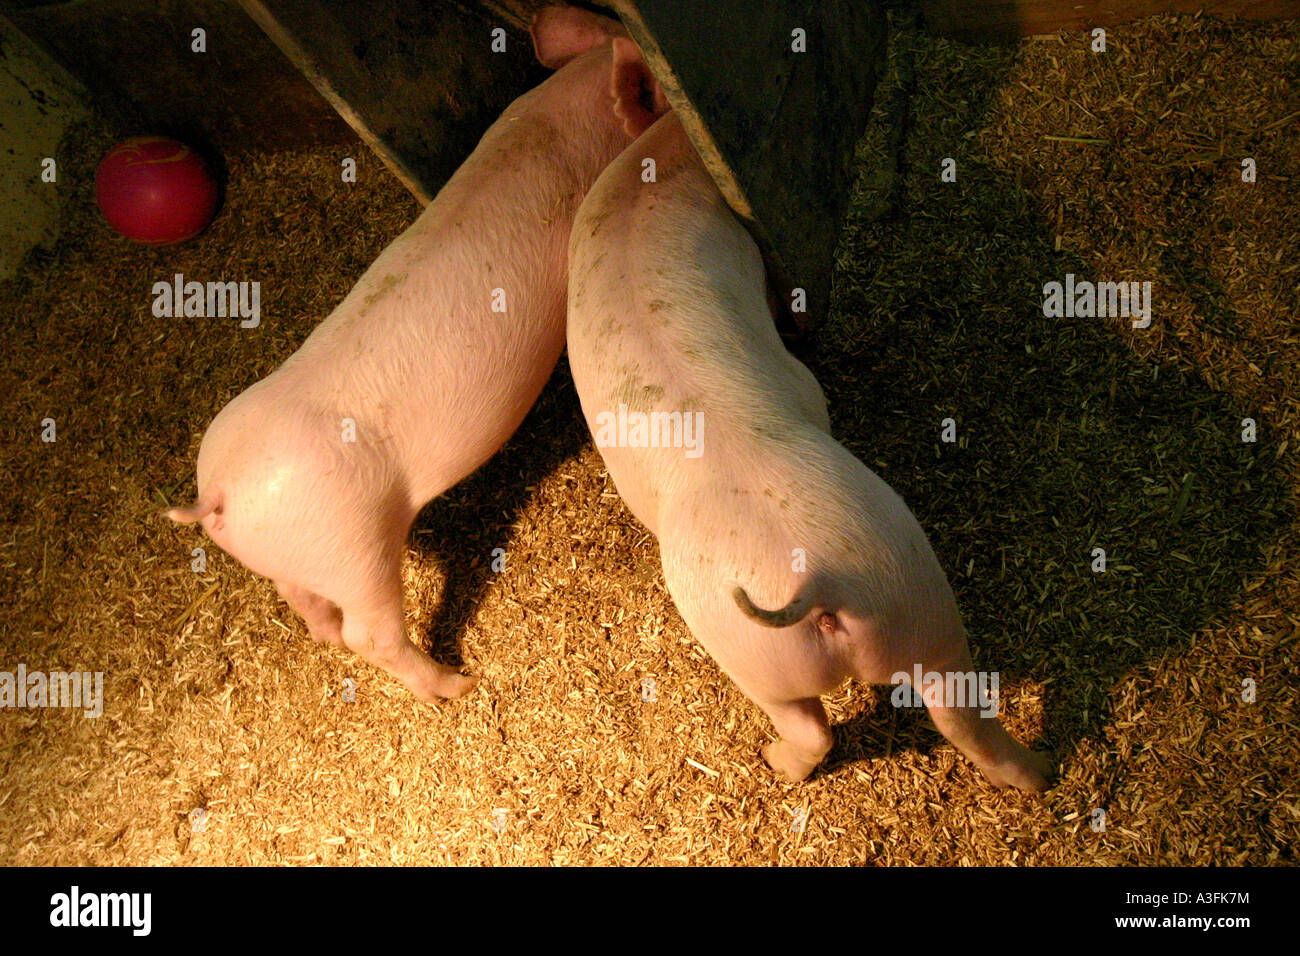 TWO PIGS WITH THEIR BUMS STUCK OUT EATING WAGGING THEIR TAILS HORIZONTAL  BAPDB9044 Stock Photo